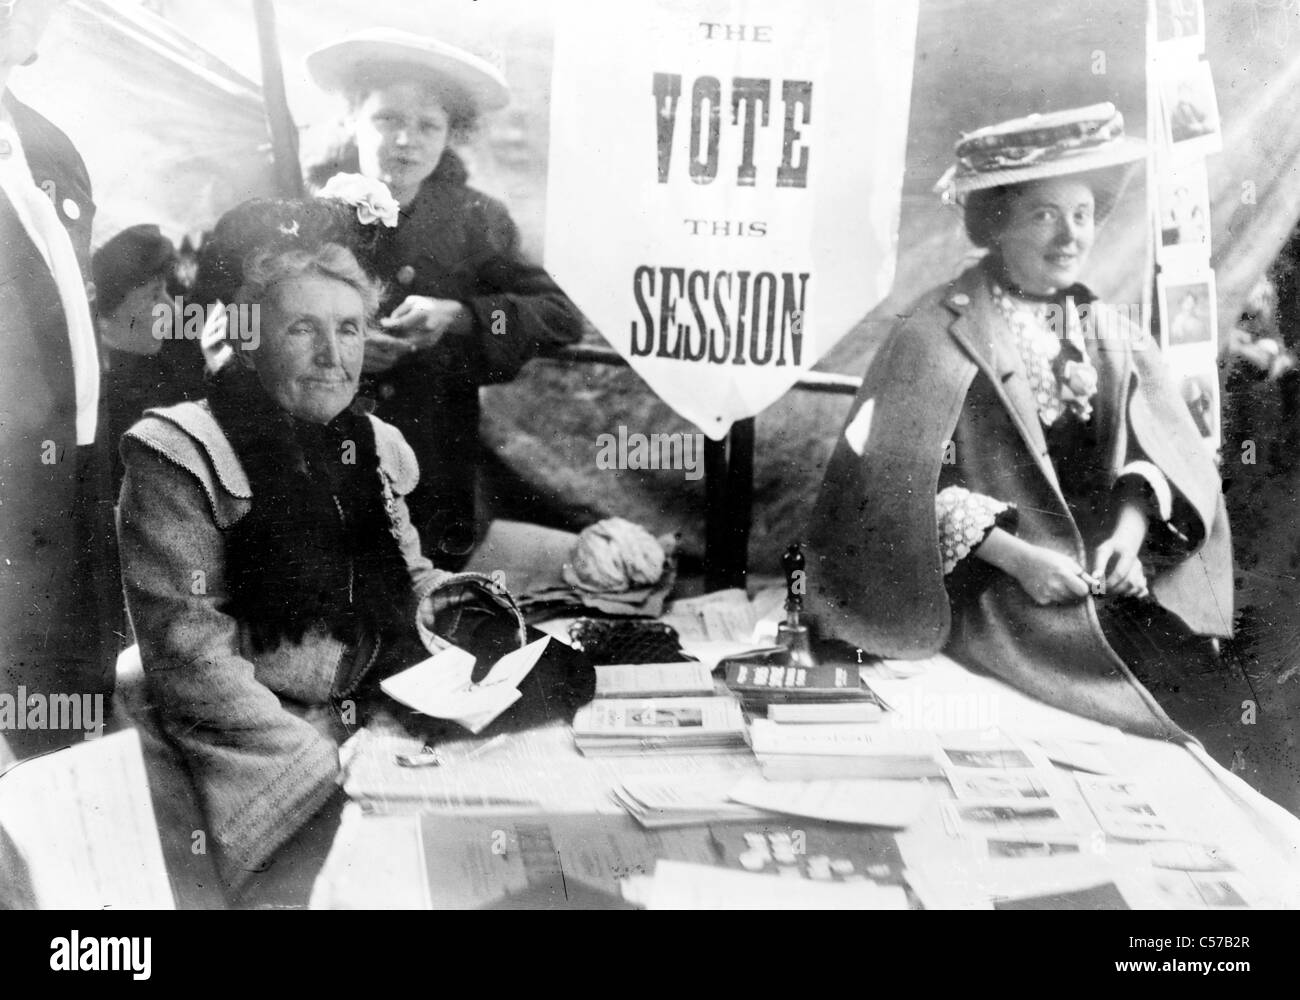 Suffragette meeting - Stock Image